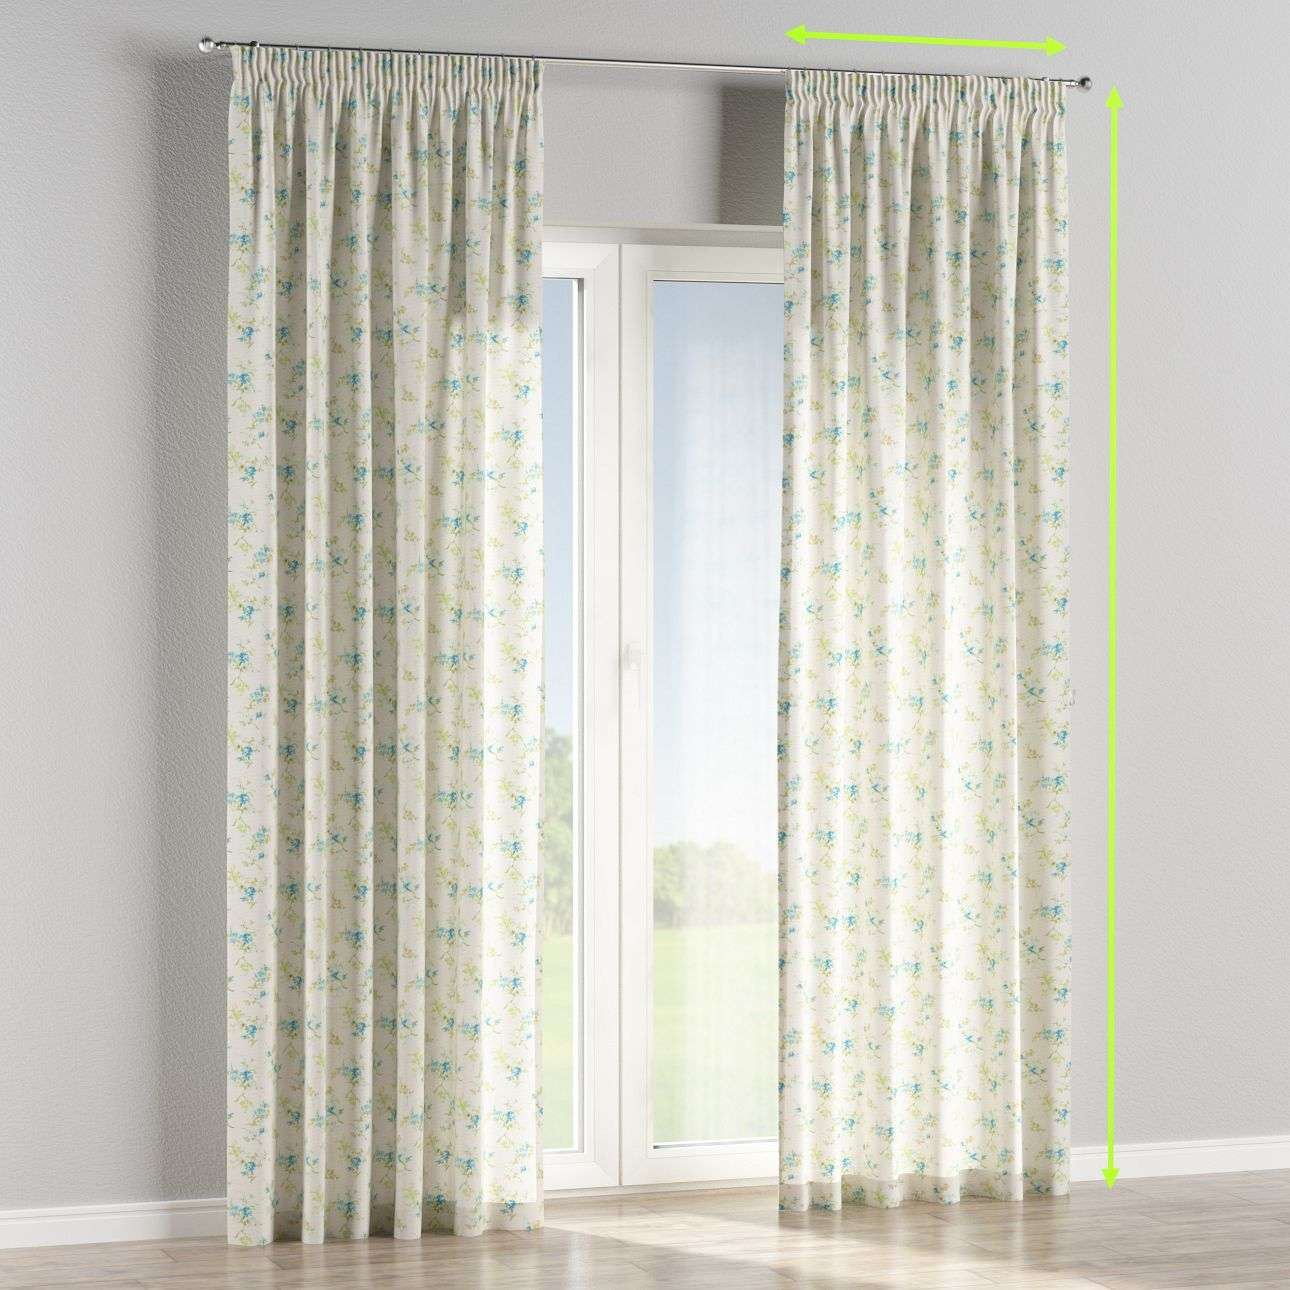 Pencil pleat curtains in collection Mirella, fabric: 141-16